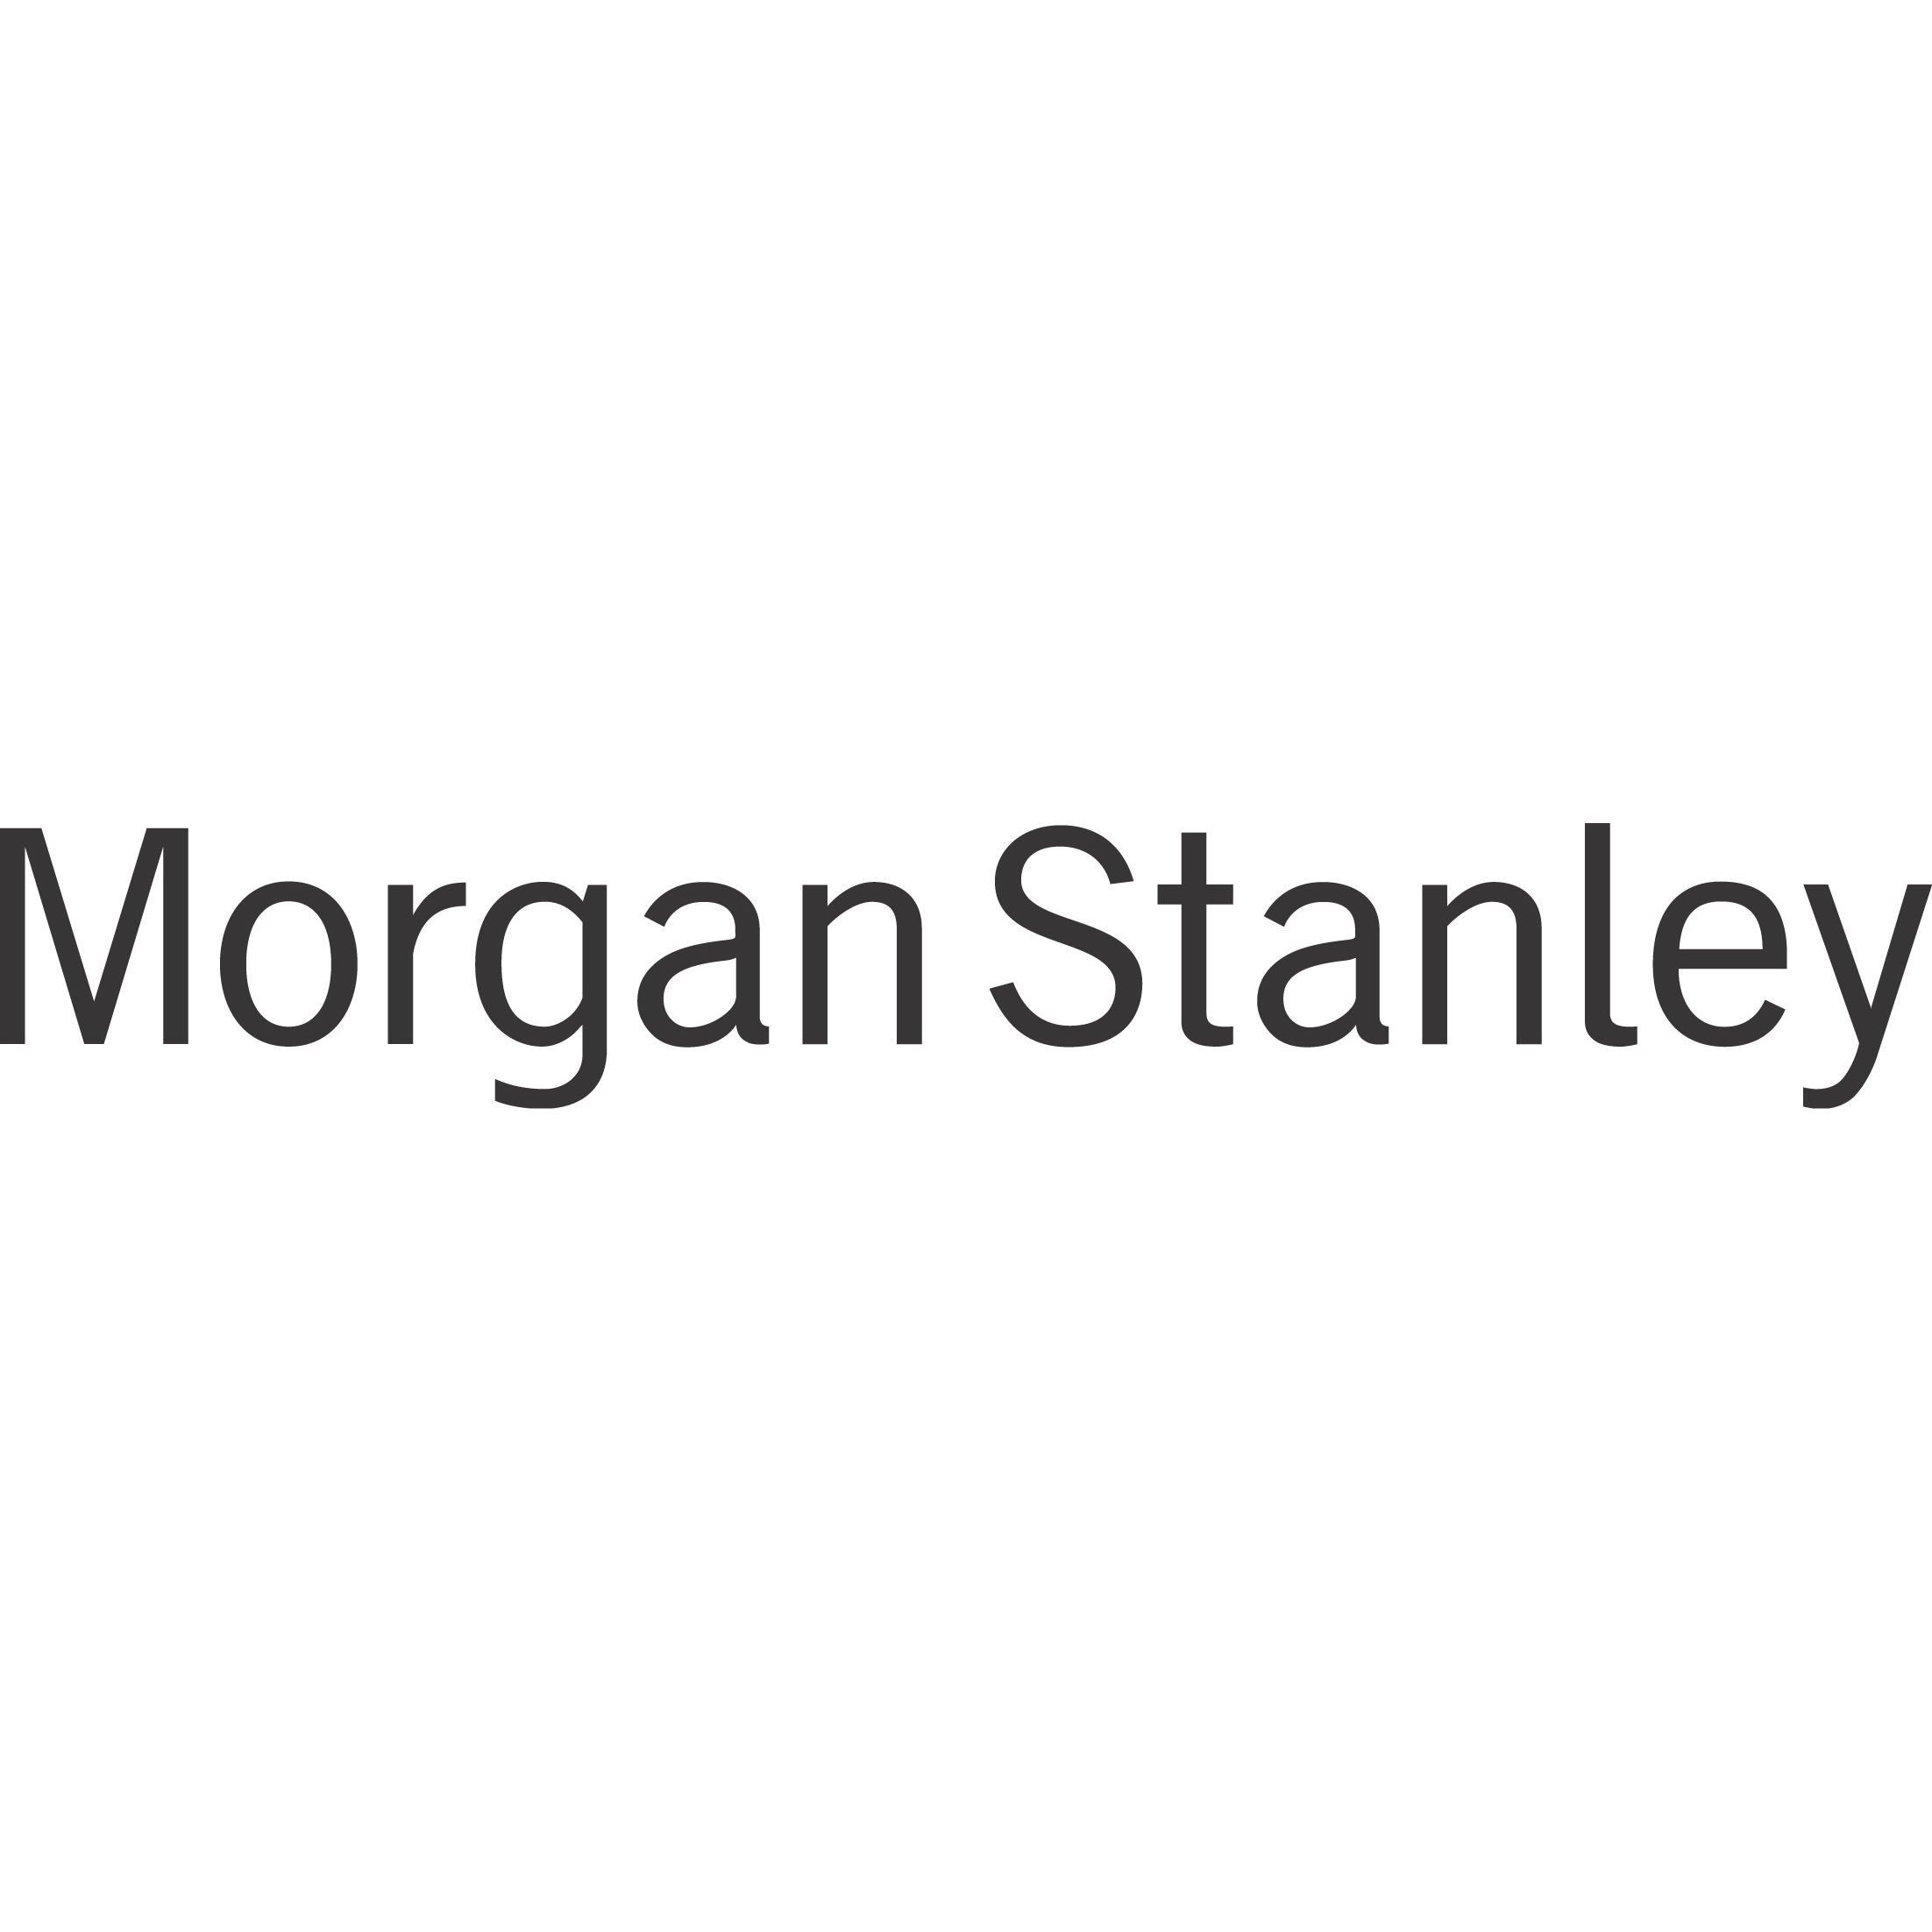 Charles Kunda - Morgan Stanley | Financial Advisor in Washington,District of Columbia